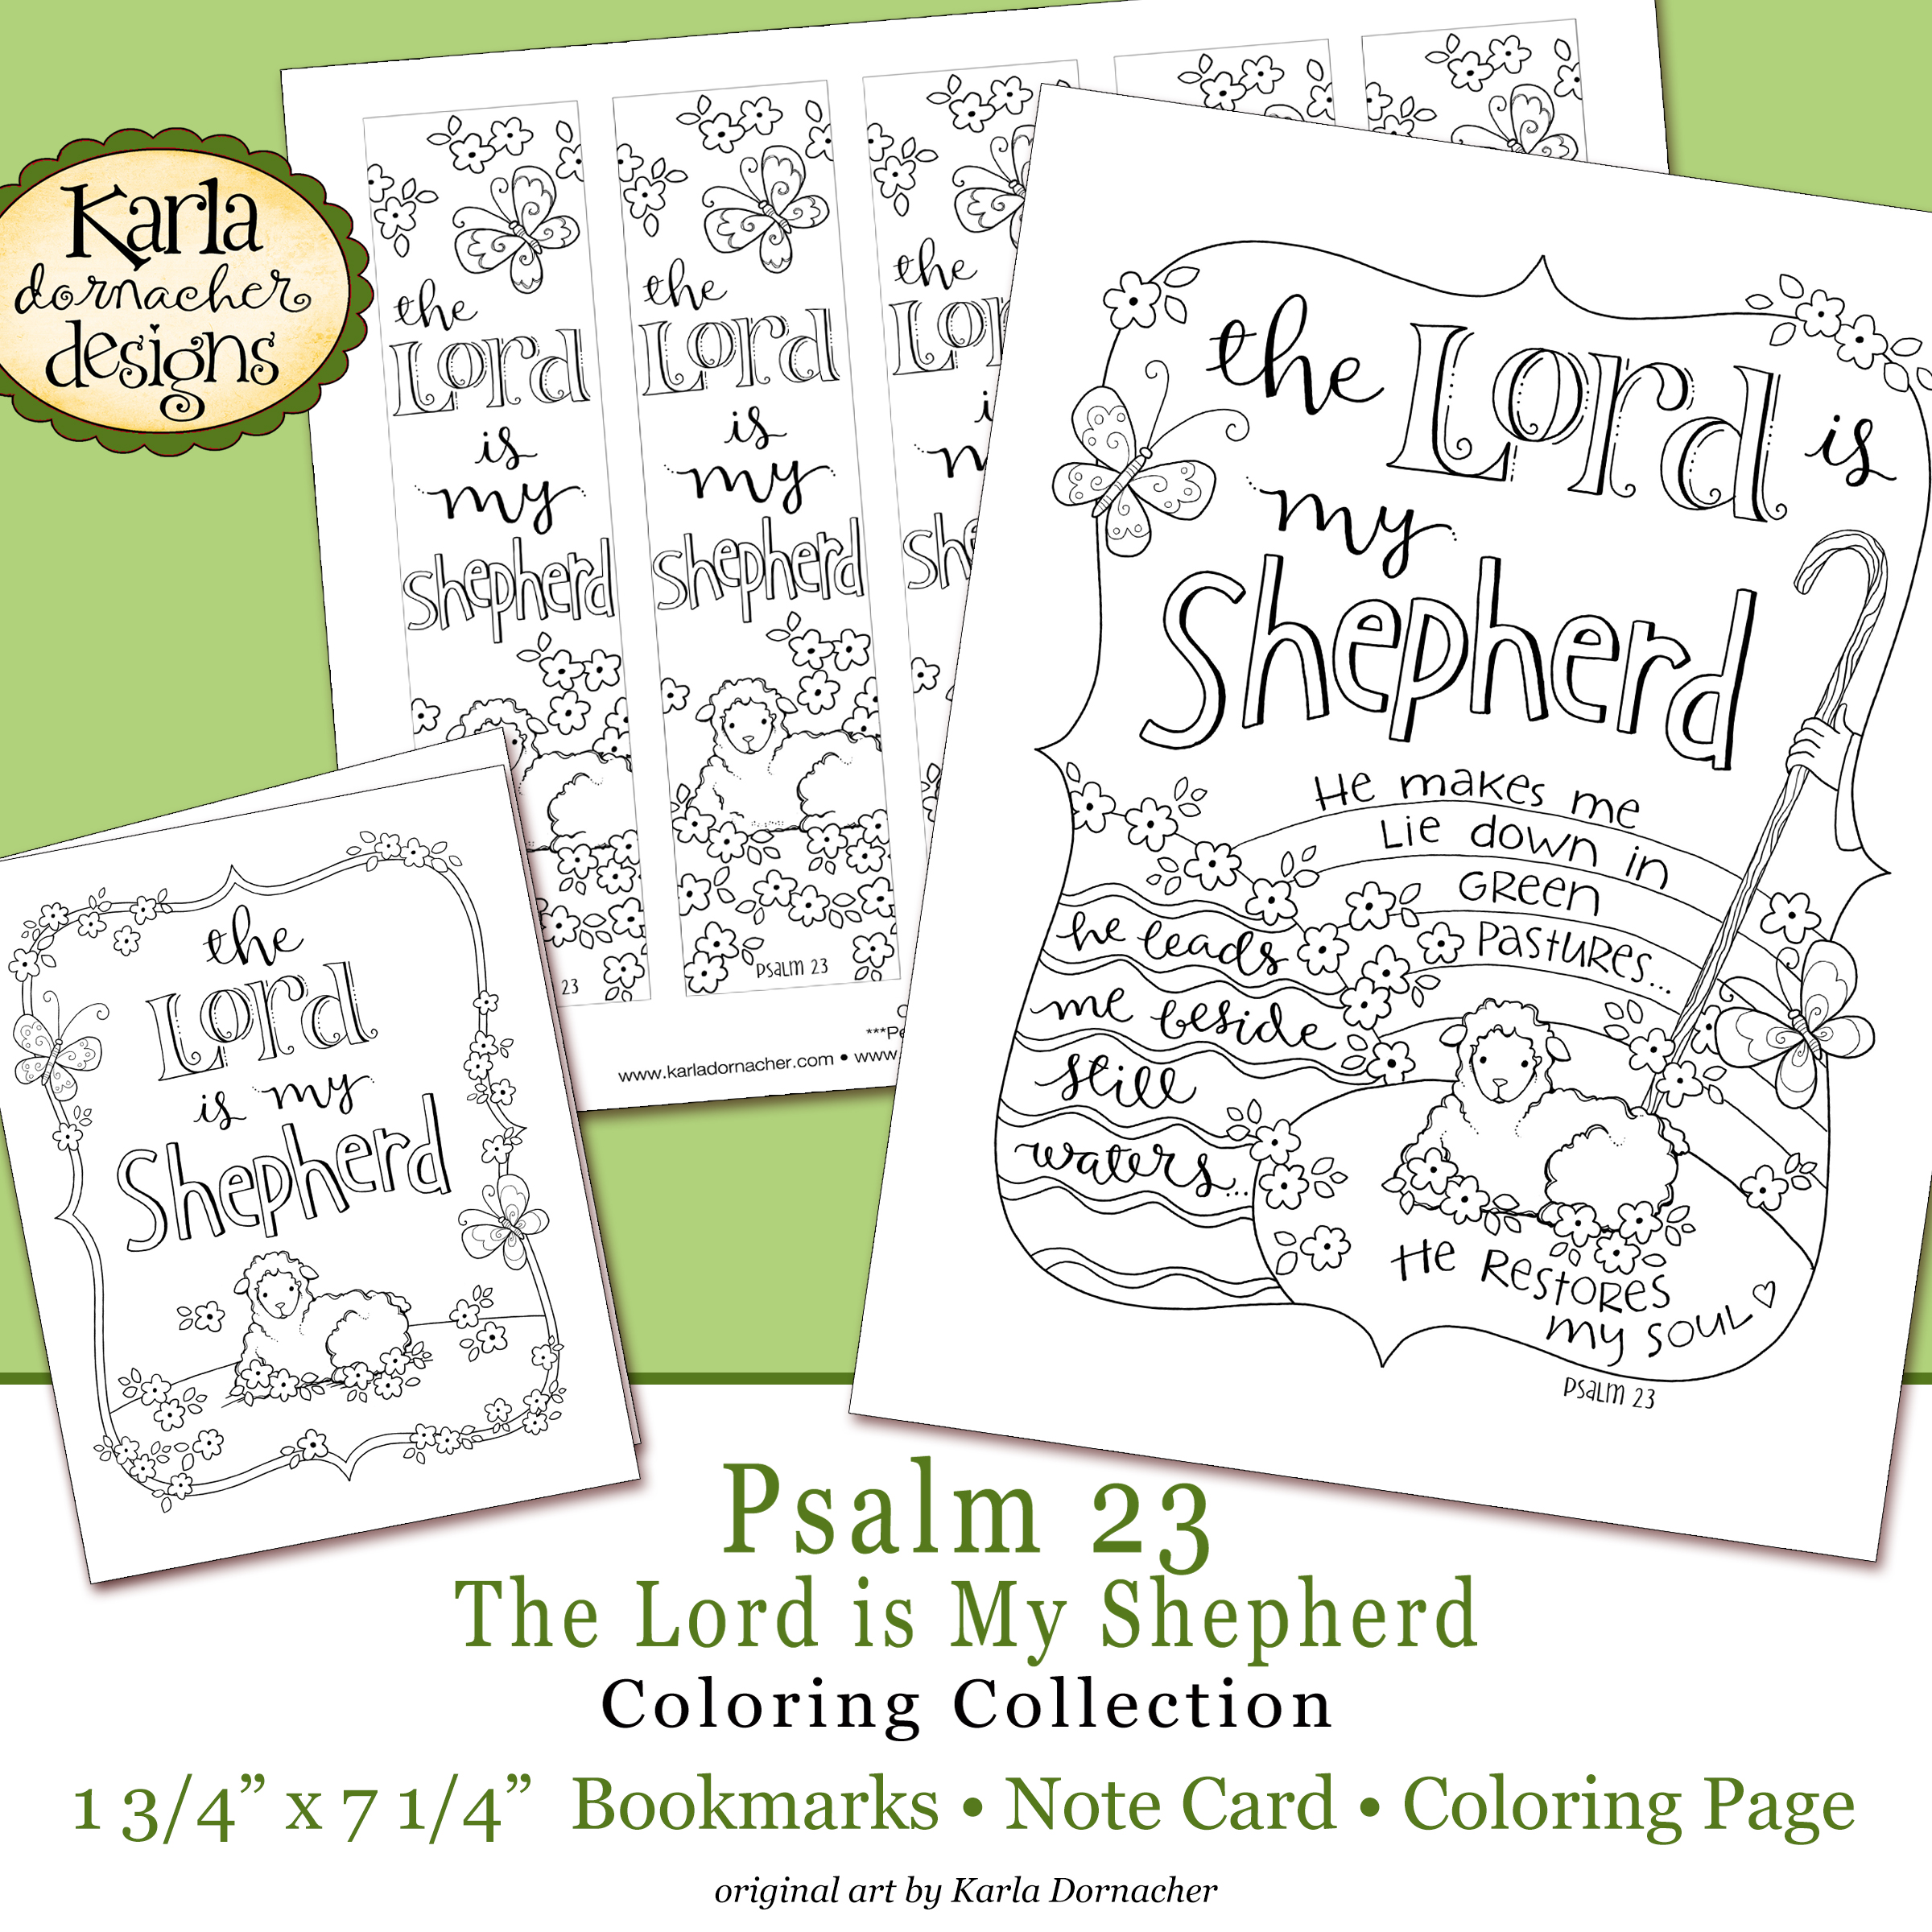 photograph relating to Psalm 23 Printable called Easter Psalm 23 Bible Journaling Printable Coloring Selection